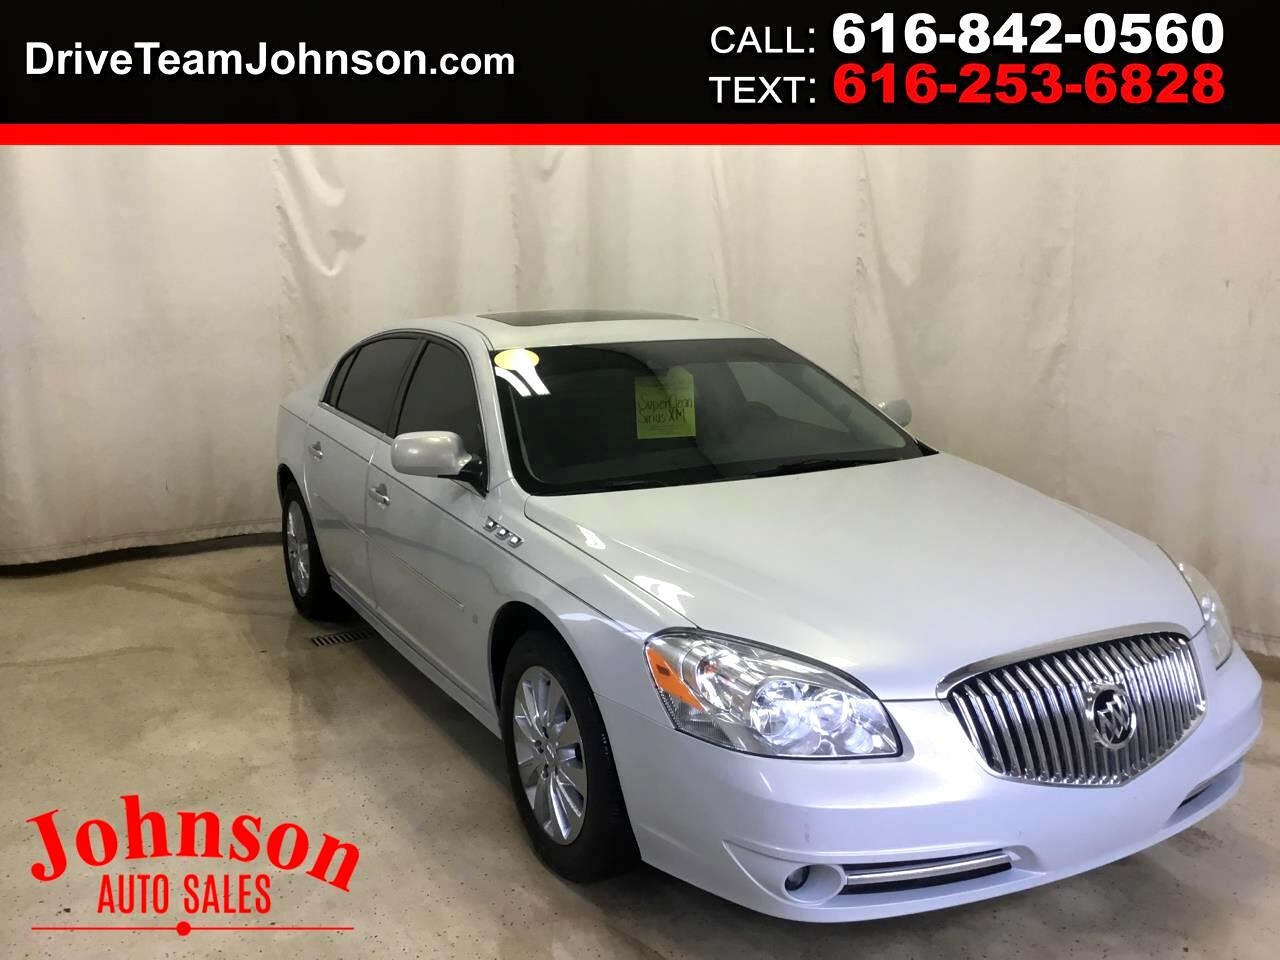 Buick Lucerne 4dr Sdn CXL Special Edition *Ltd Avail* 2010